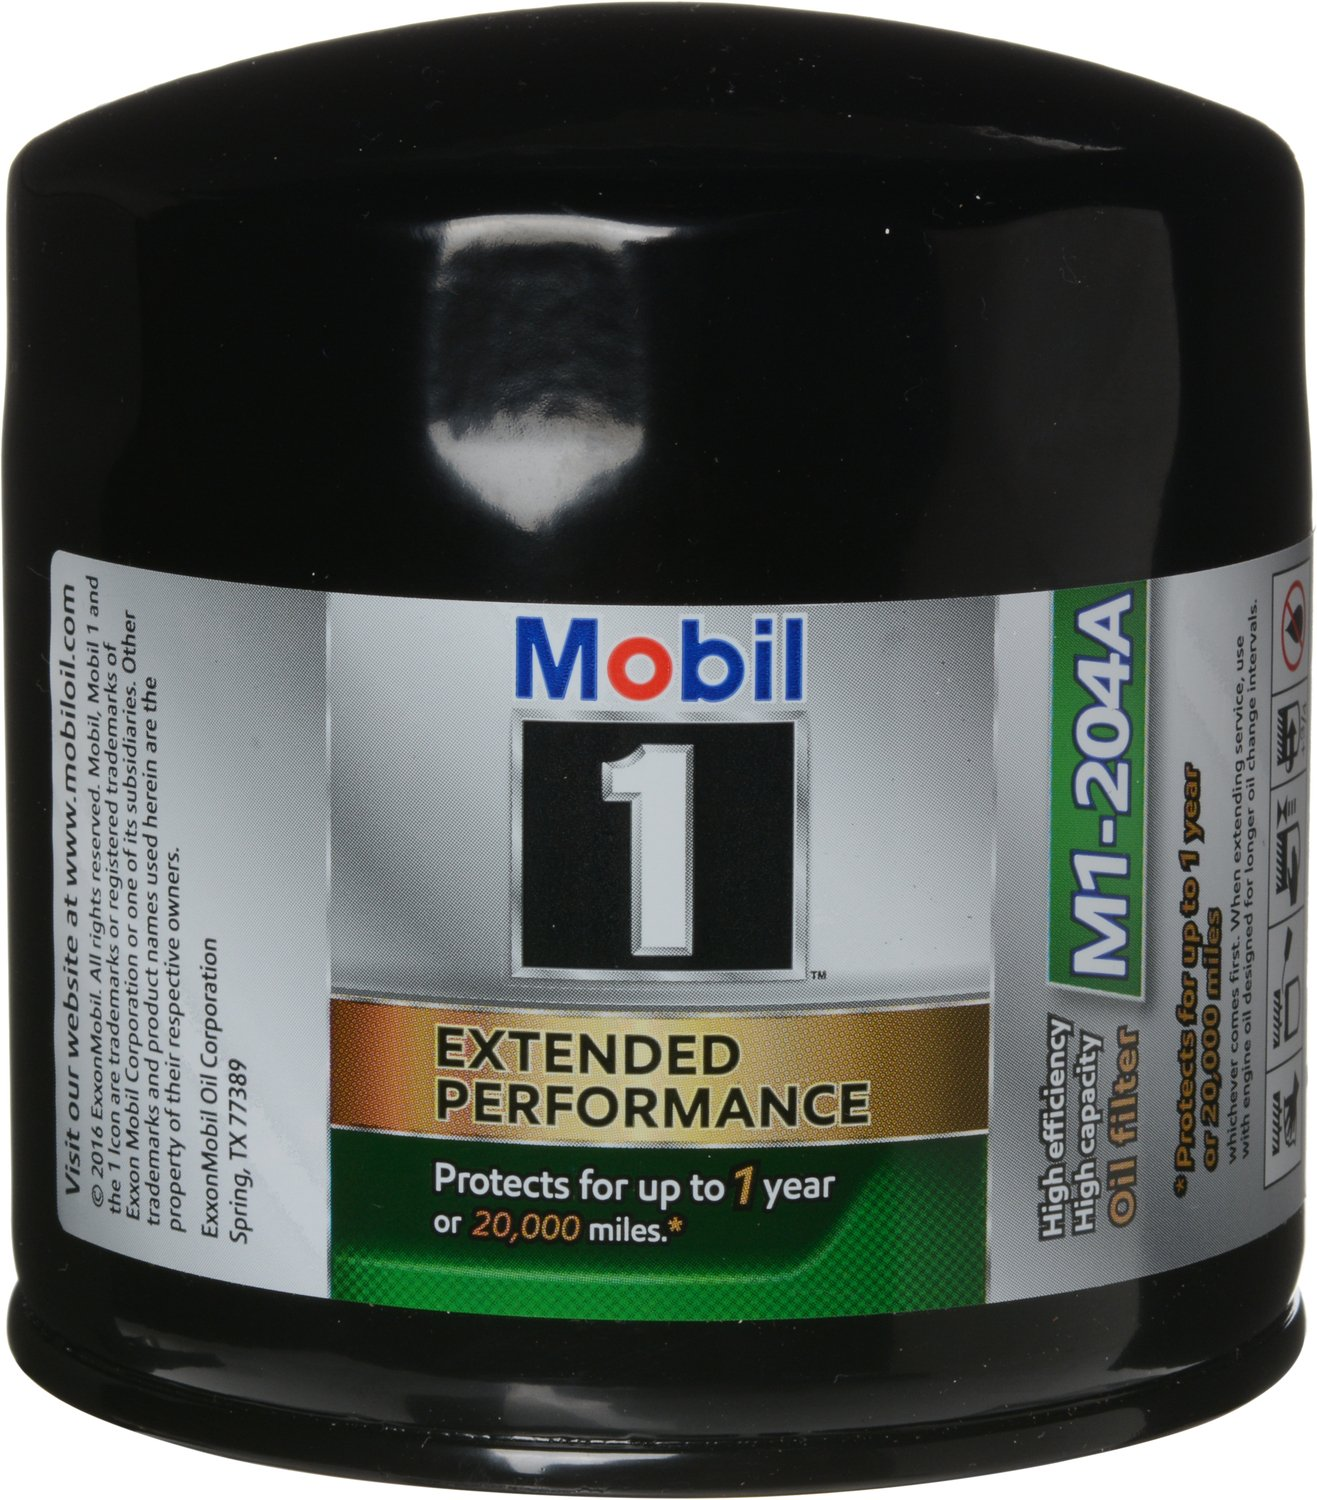 Mobil 1 M1-204A Extended Performance Oil Filter